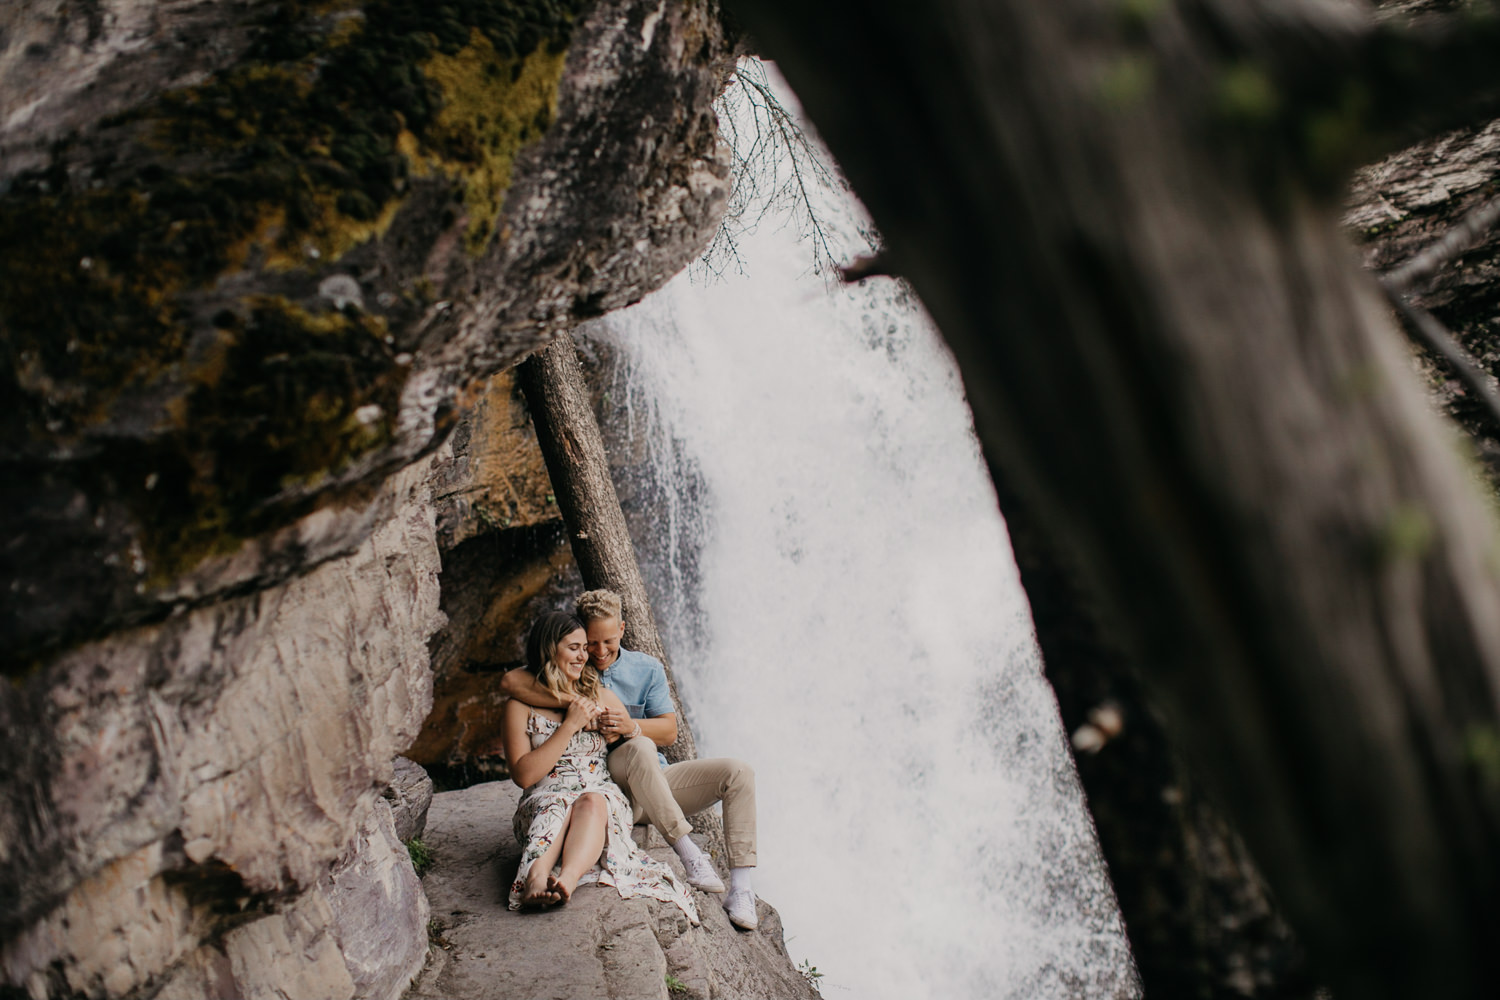 glacier-national-park-engagement-photographer-18.jpg